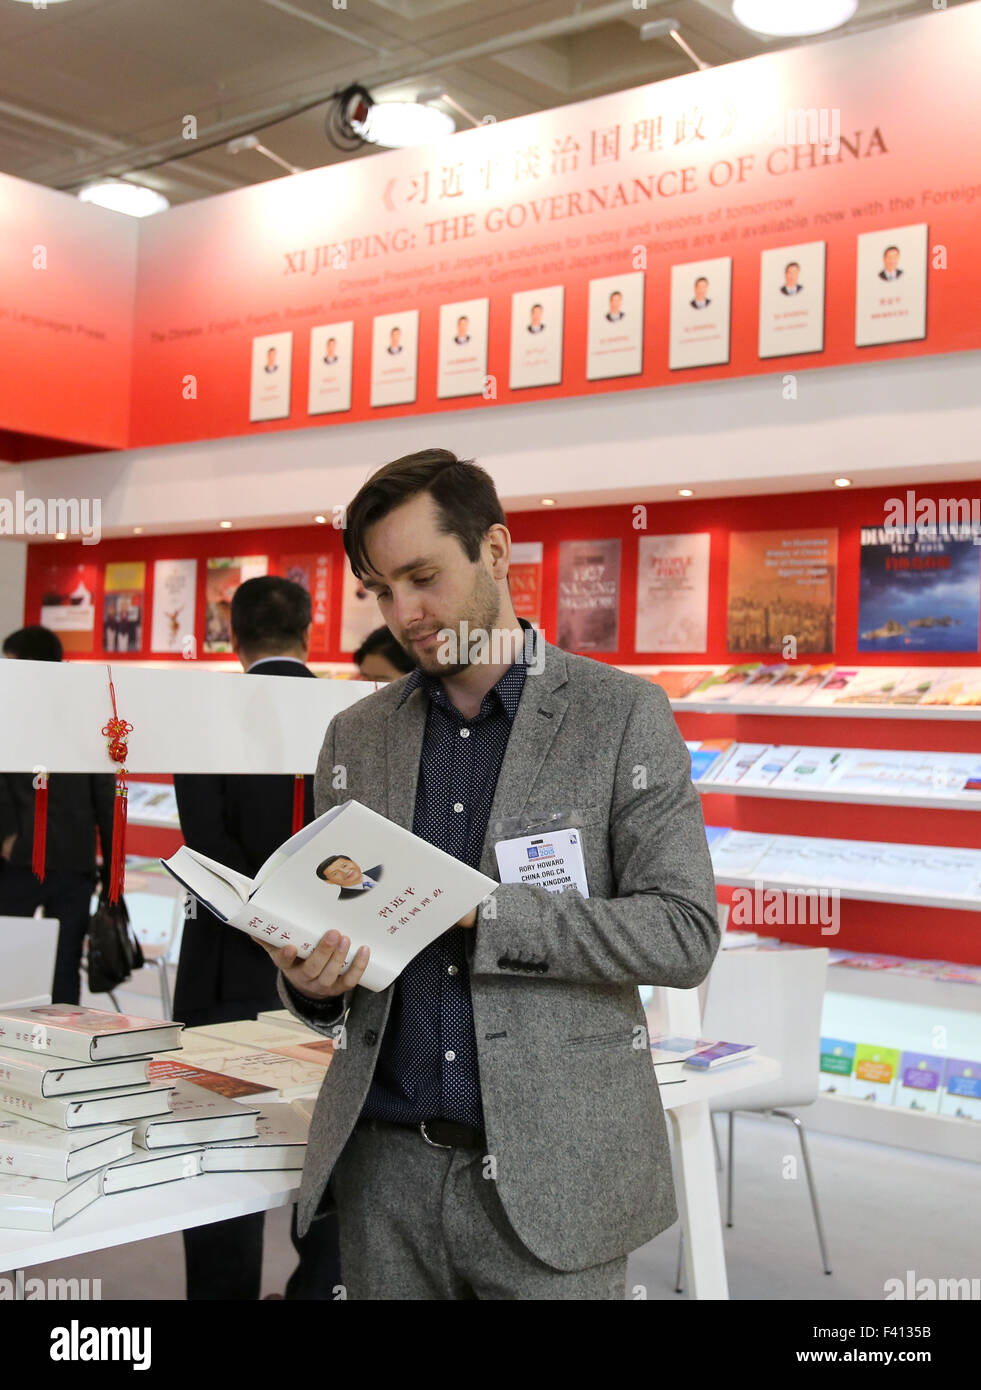 """London, UK. 14th Apr, 2015. File photo taken on April 14, 2015 shows a man reading the book """"Xi Jinping: the Governance Stock Photo"""